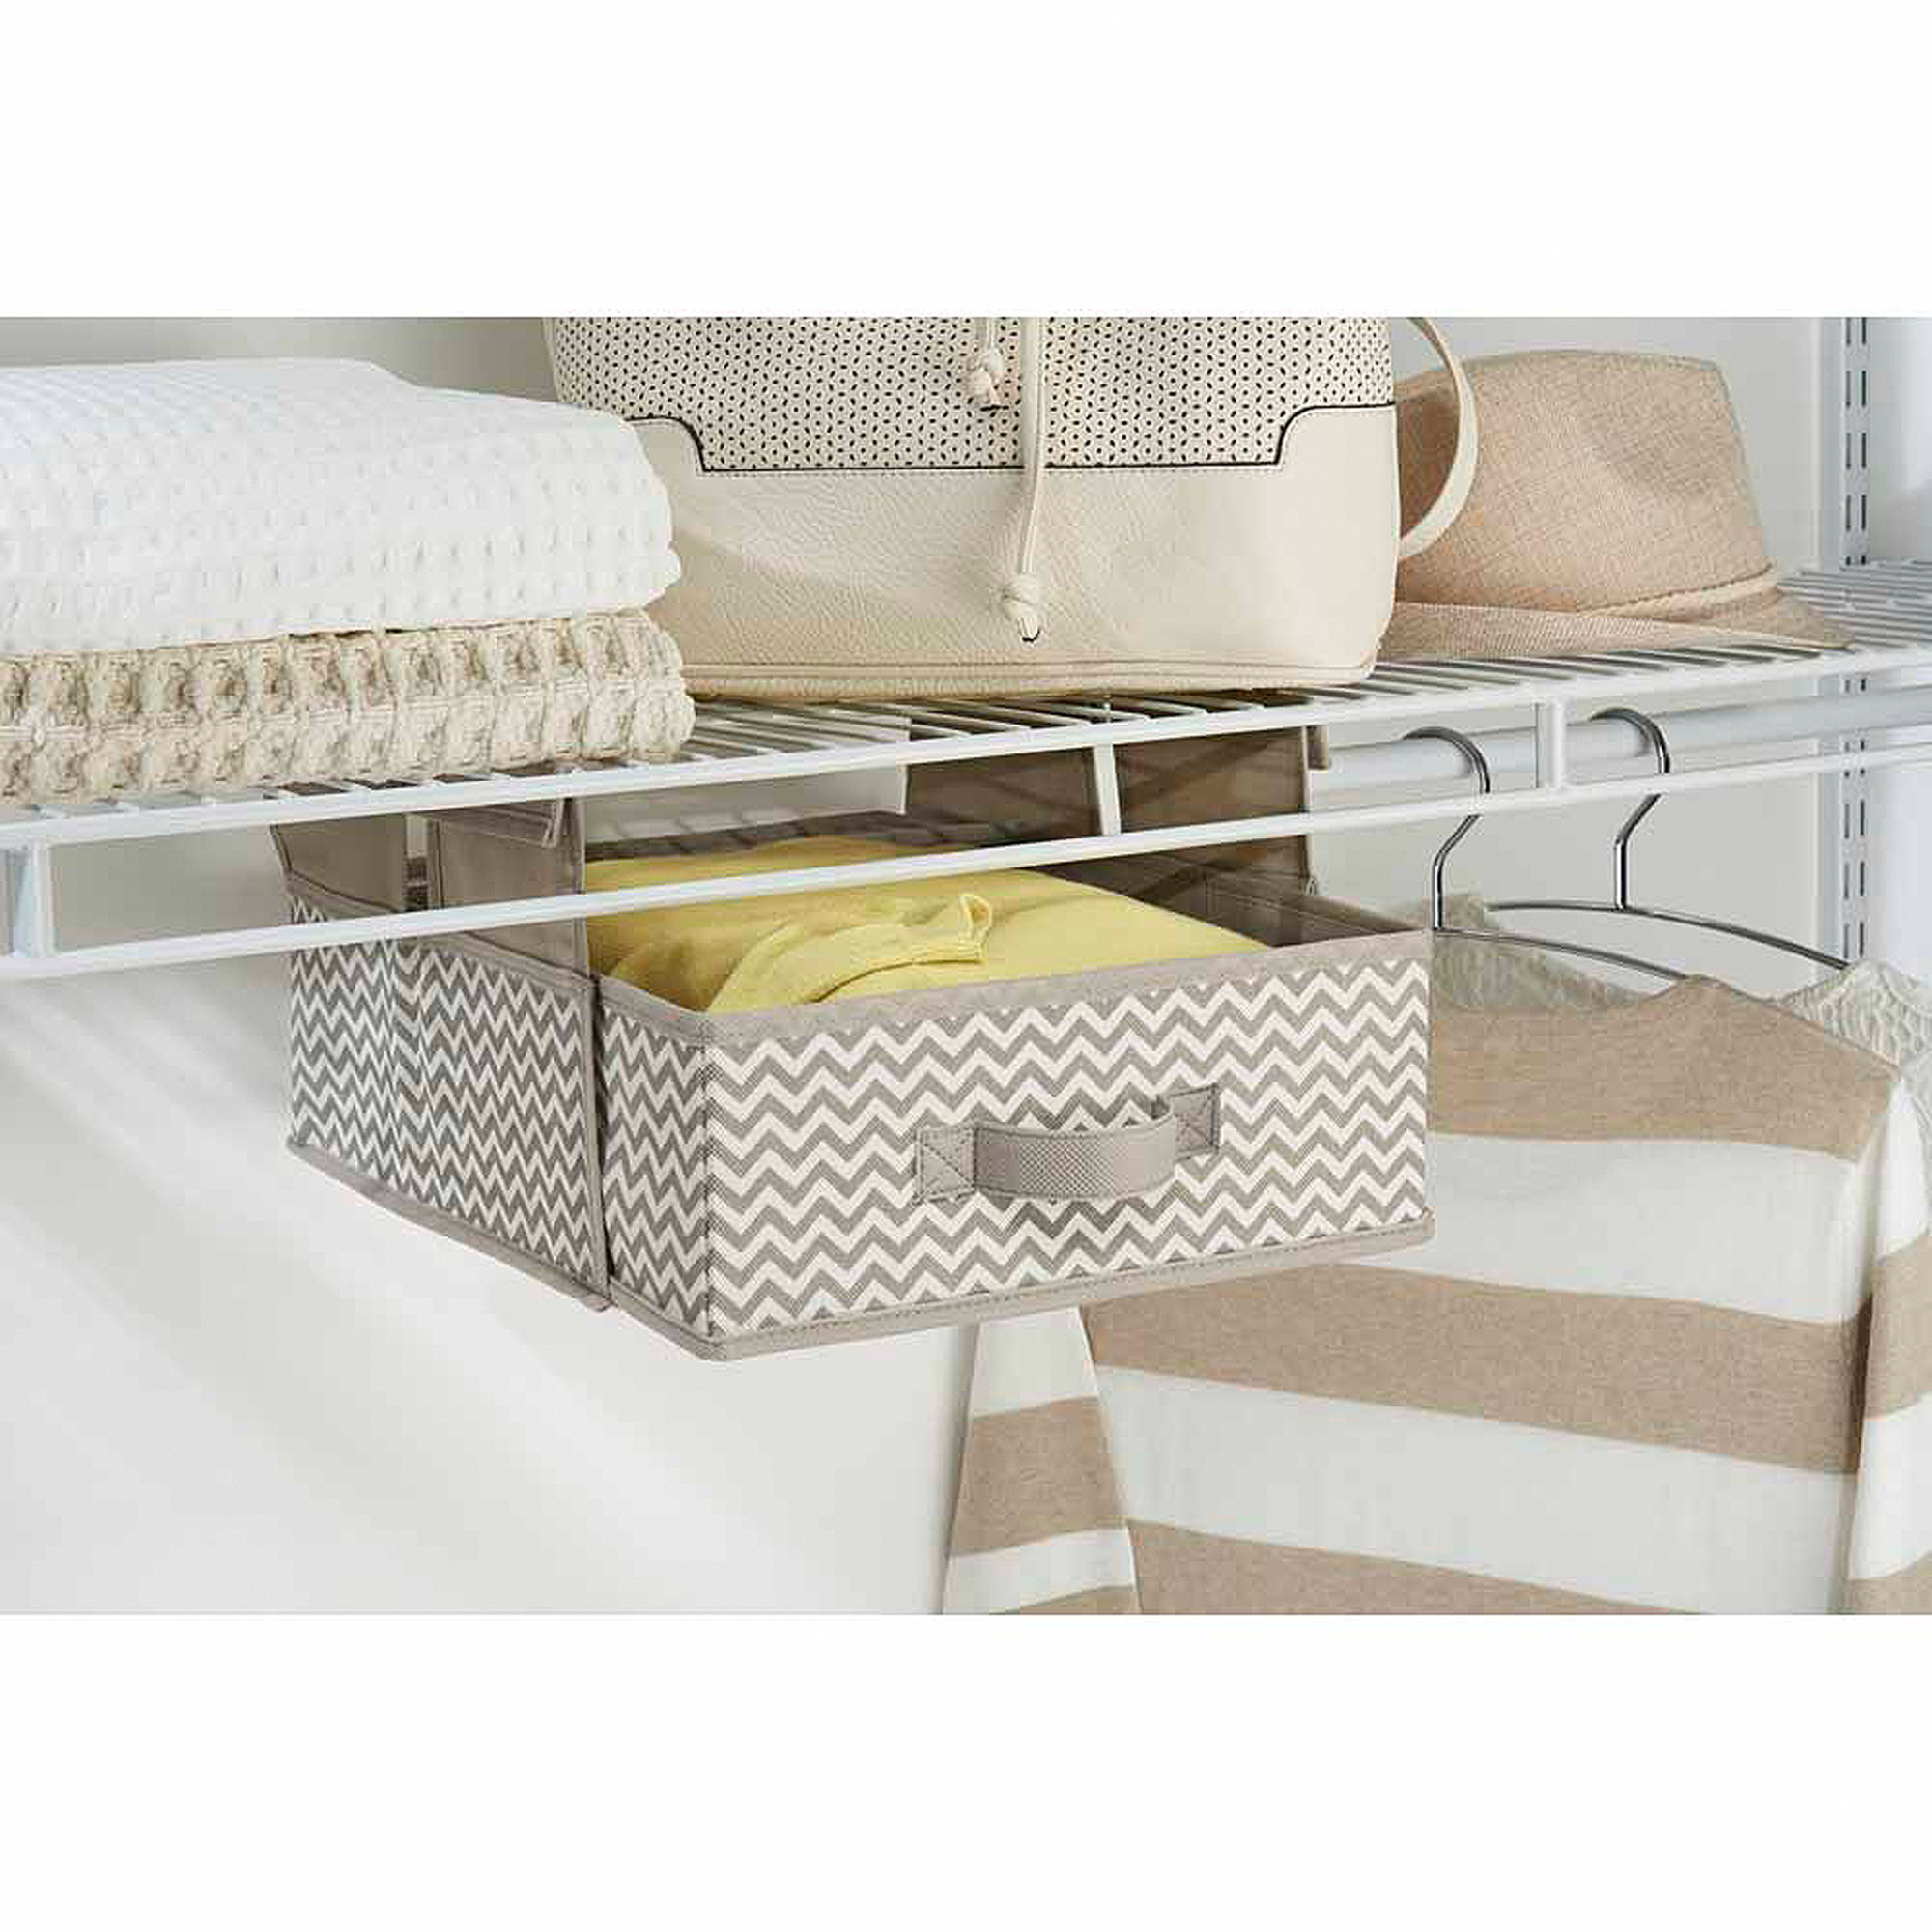 InterDesign Axis Hanging Shelf with Drawer, Chevron